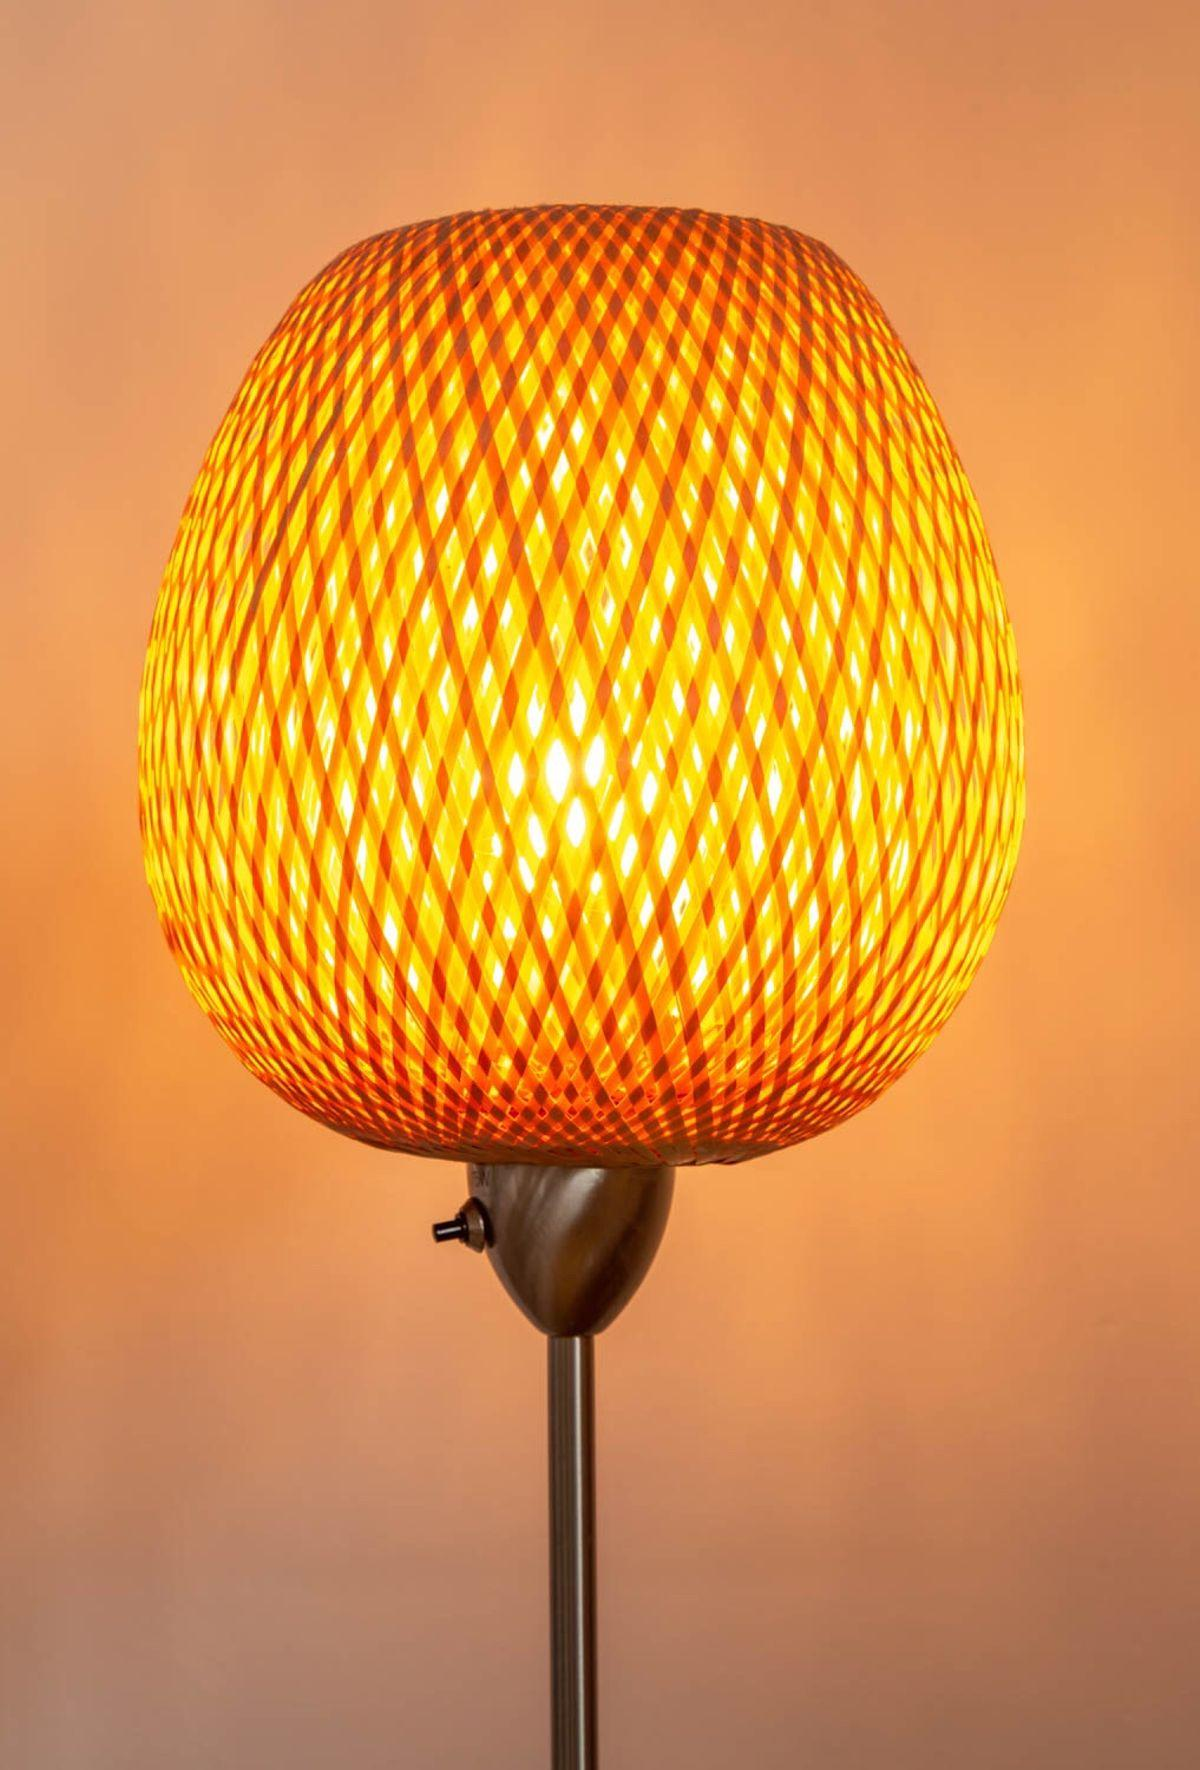 Rattan Lampe Stehlampe